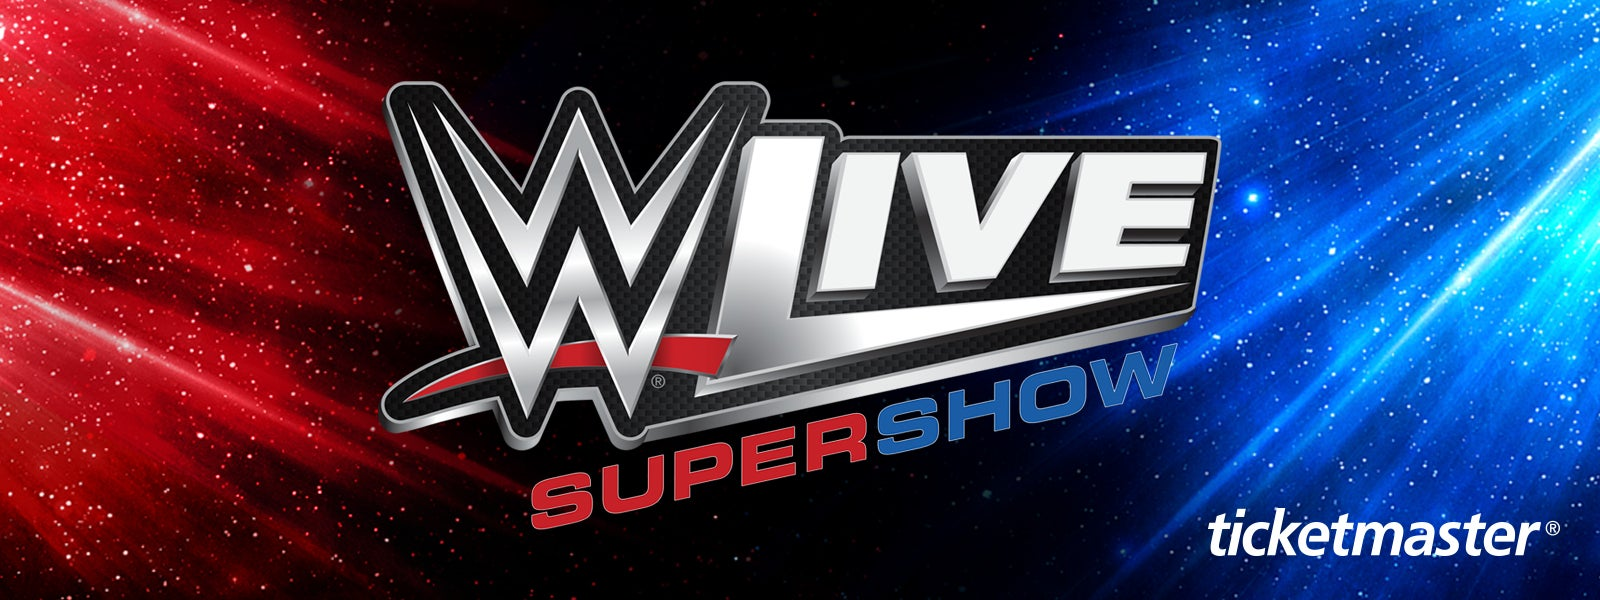 WWE Live Supershow